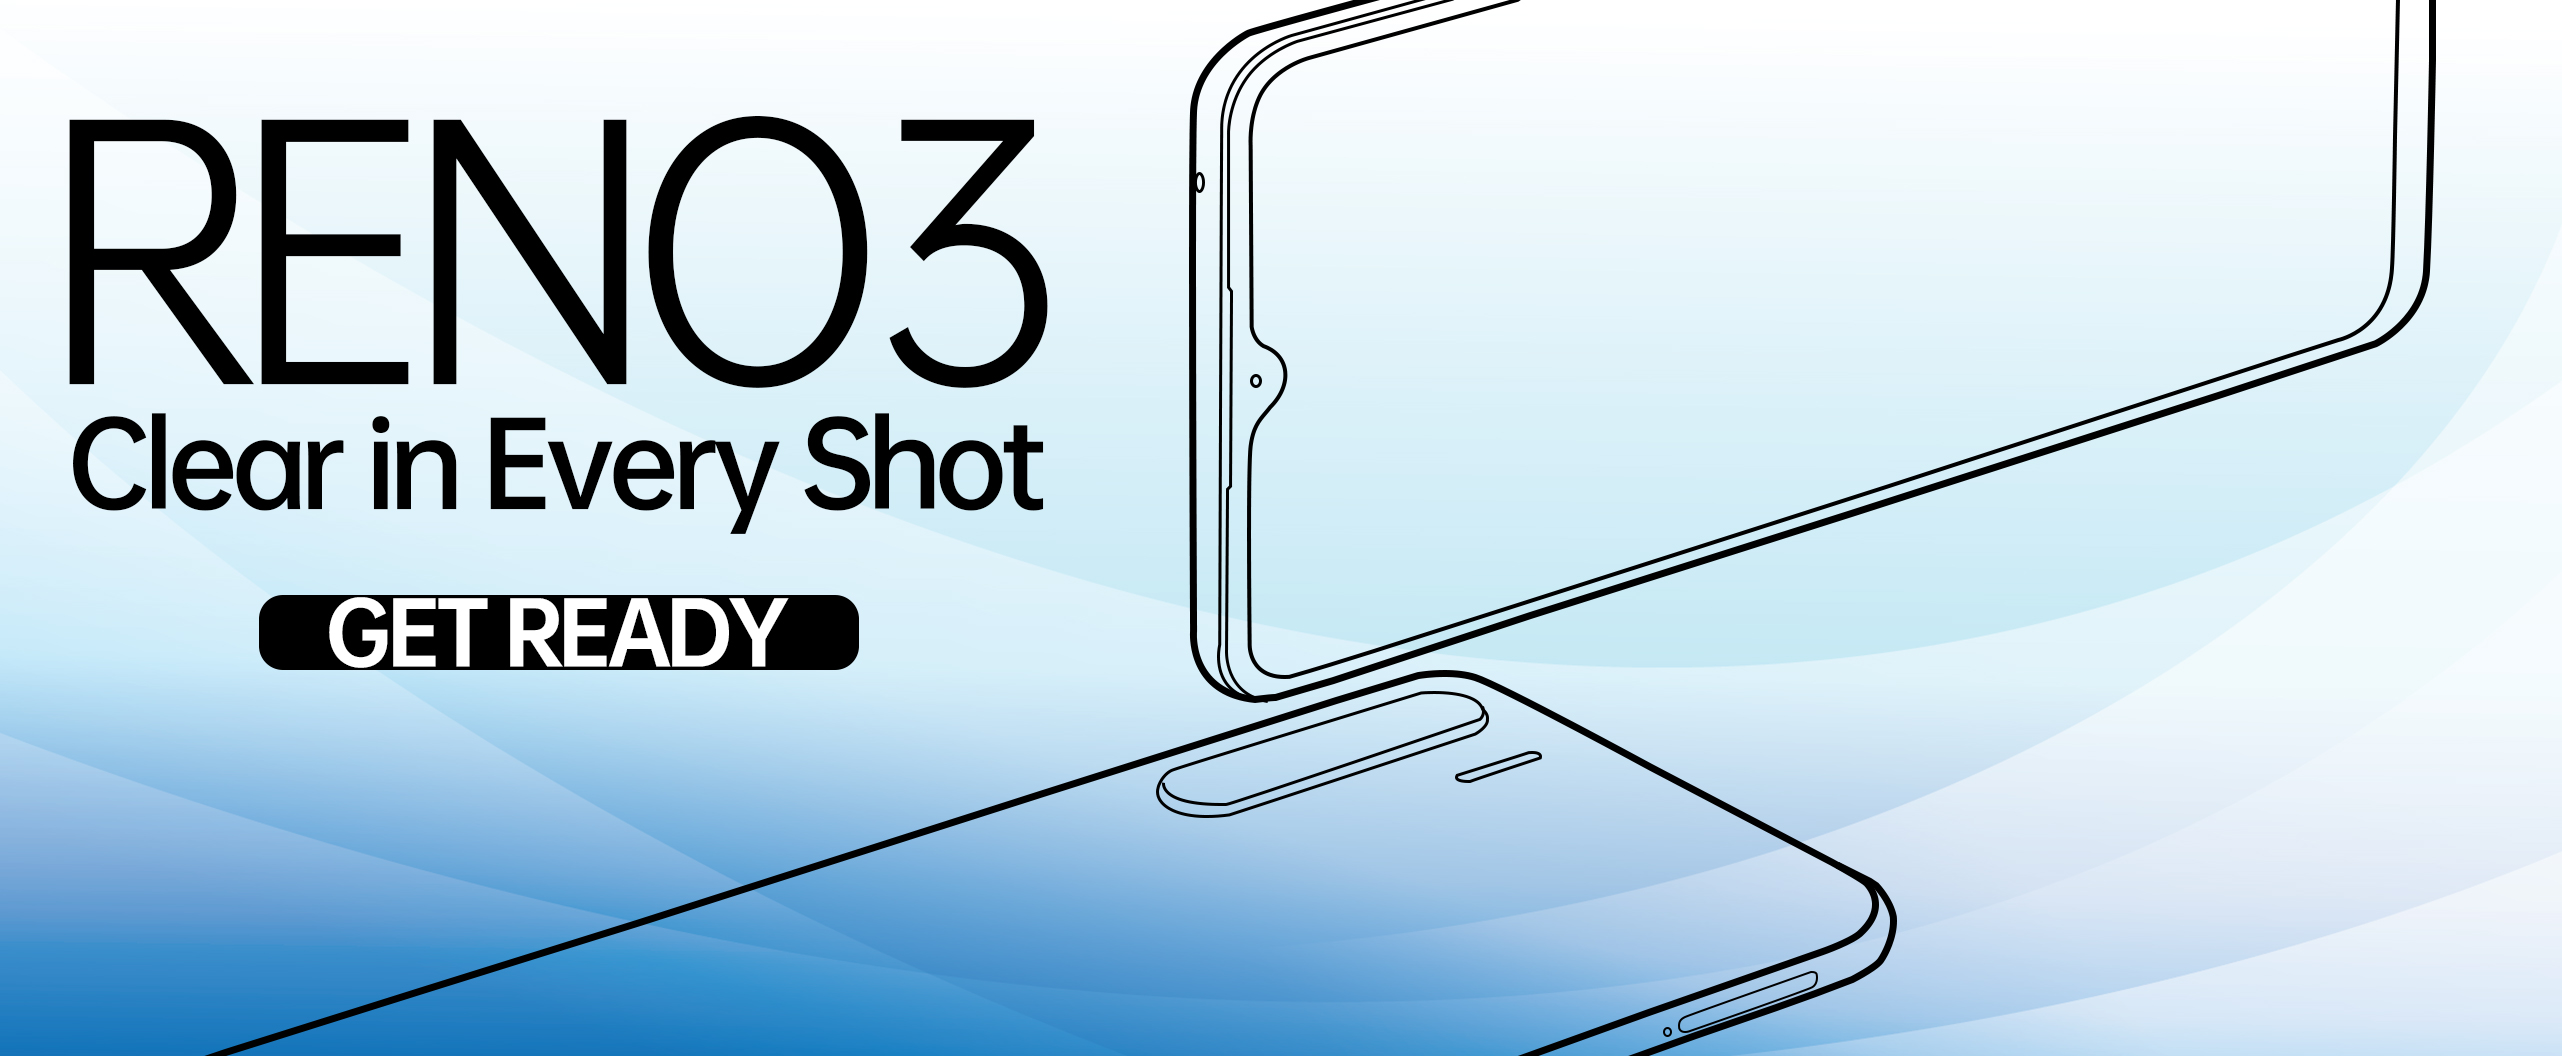 OPPO Reno3 Coming to Kenya Making Every Shot Clear